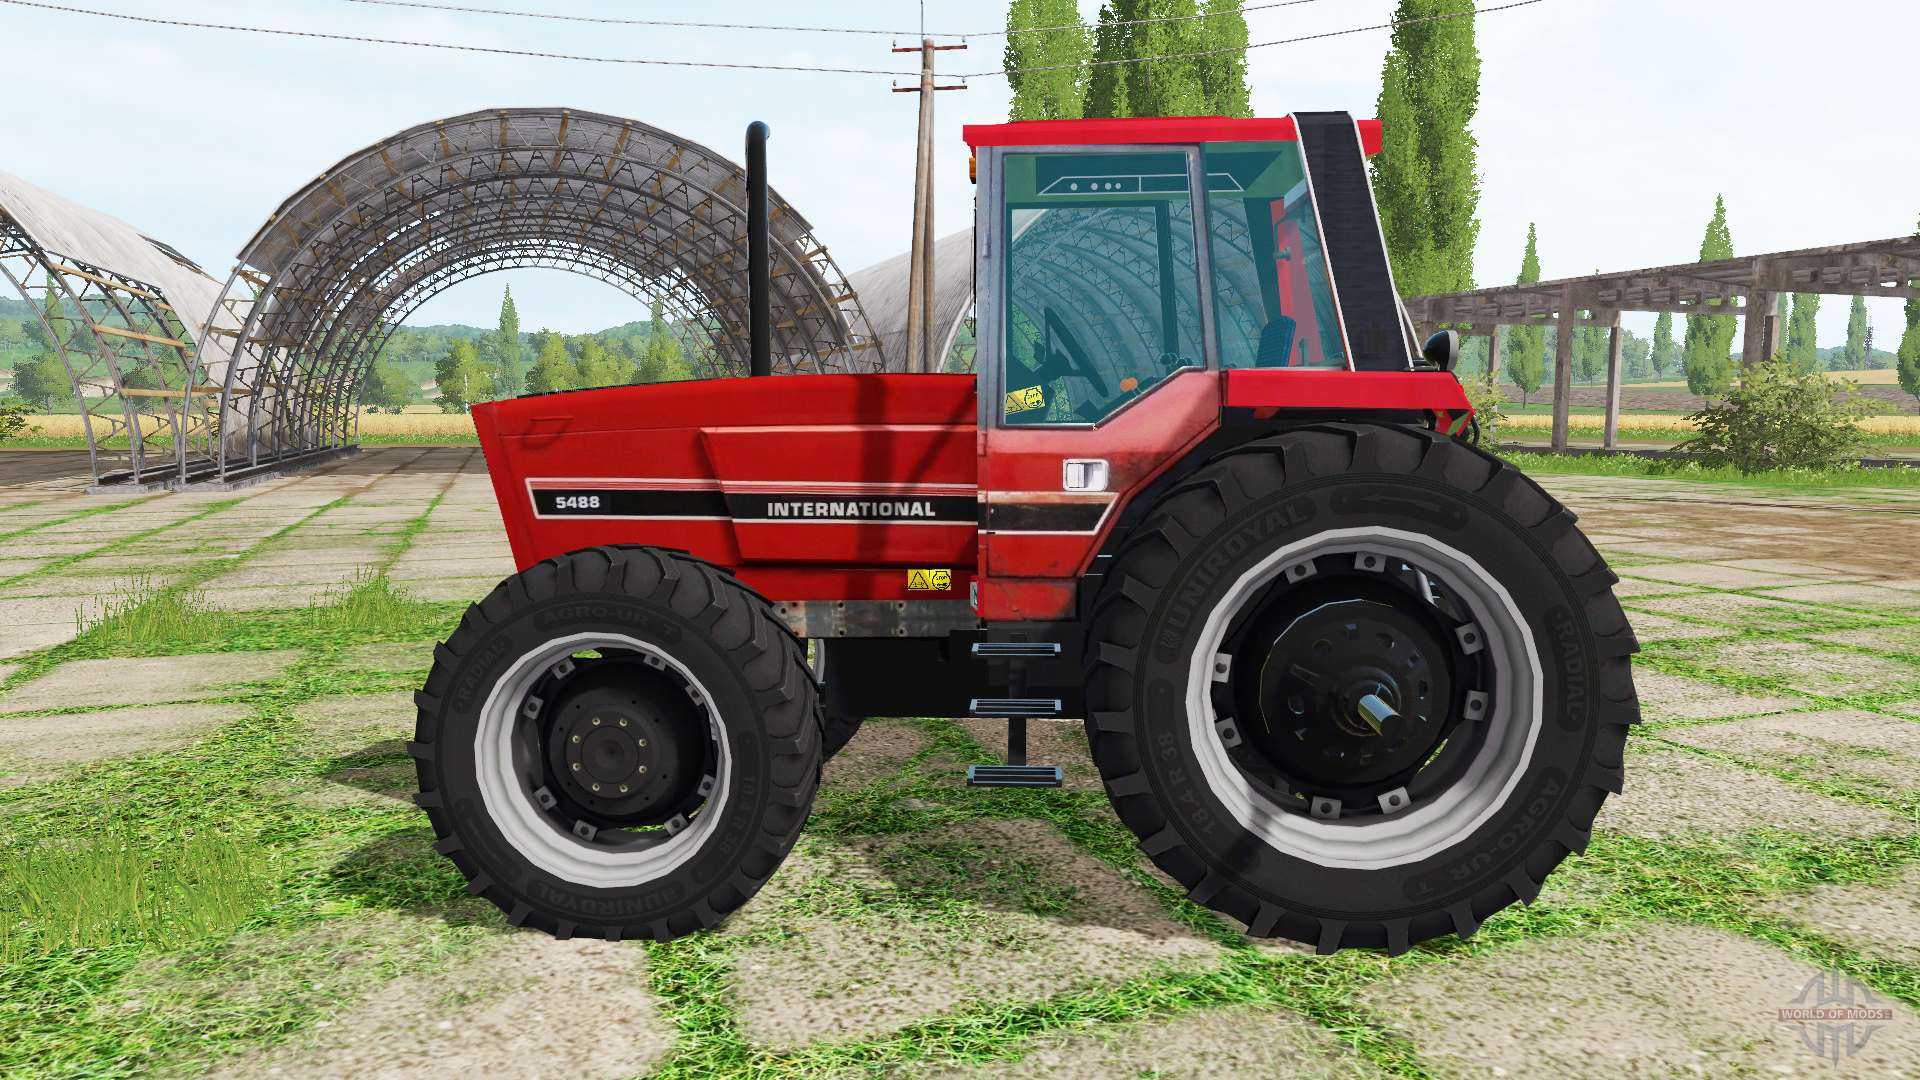 Tractor Simulator 2 : International harvester for farming simulator